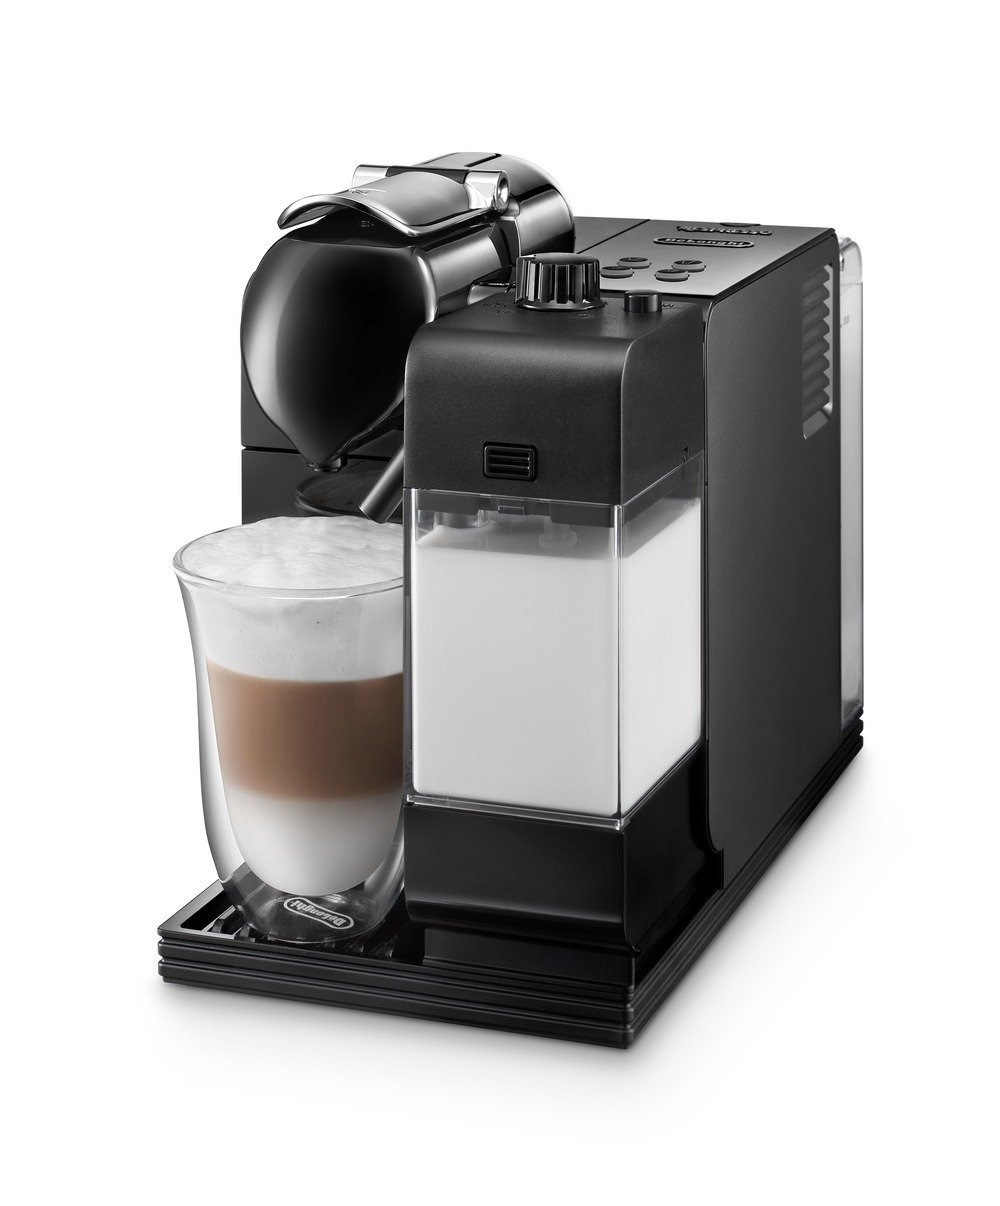 Review of Nespresso Lattissima Plus Coffee Machine